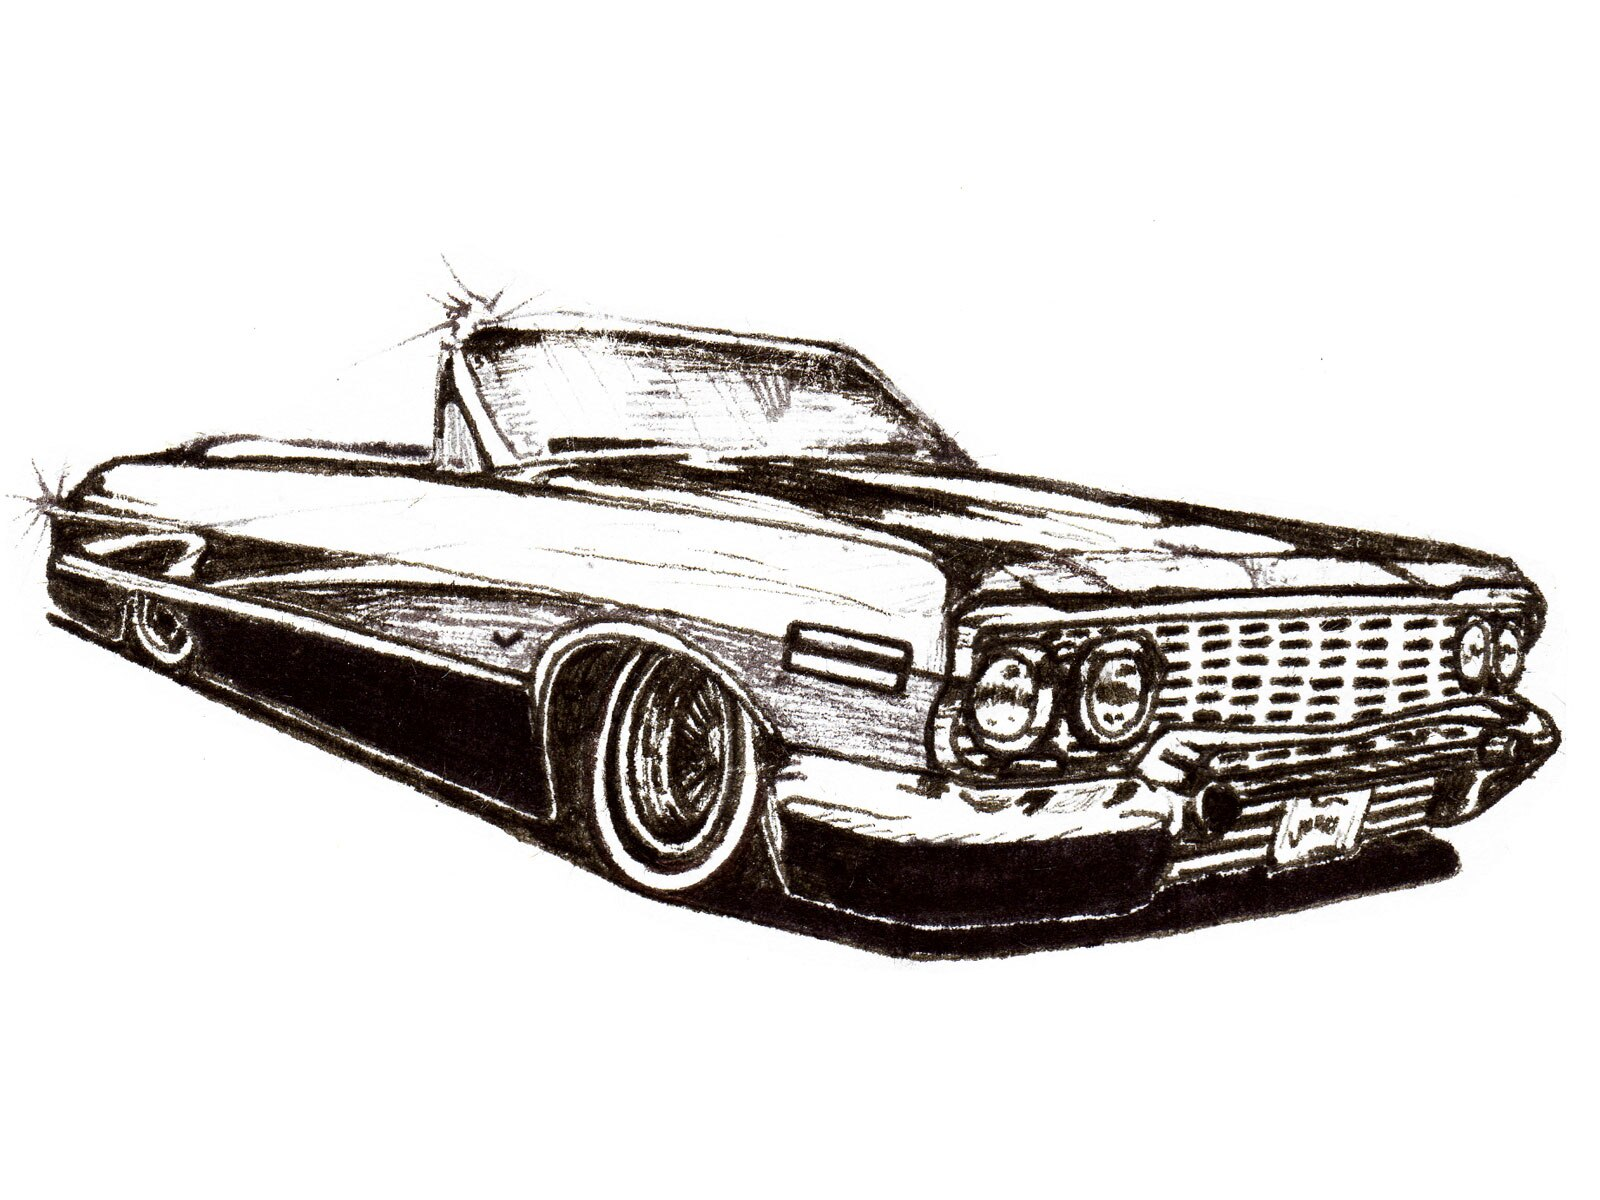 Custom Old Cars besides 23005025 additionally Movie About Lowriders And Skate Punk in addition Nice Rides in addition 107496 Bunlar Motorcu Adami Bozar. on old but cool cars low riders